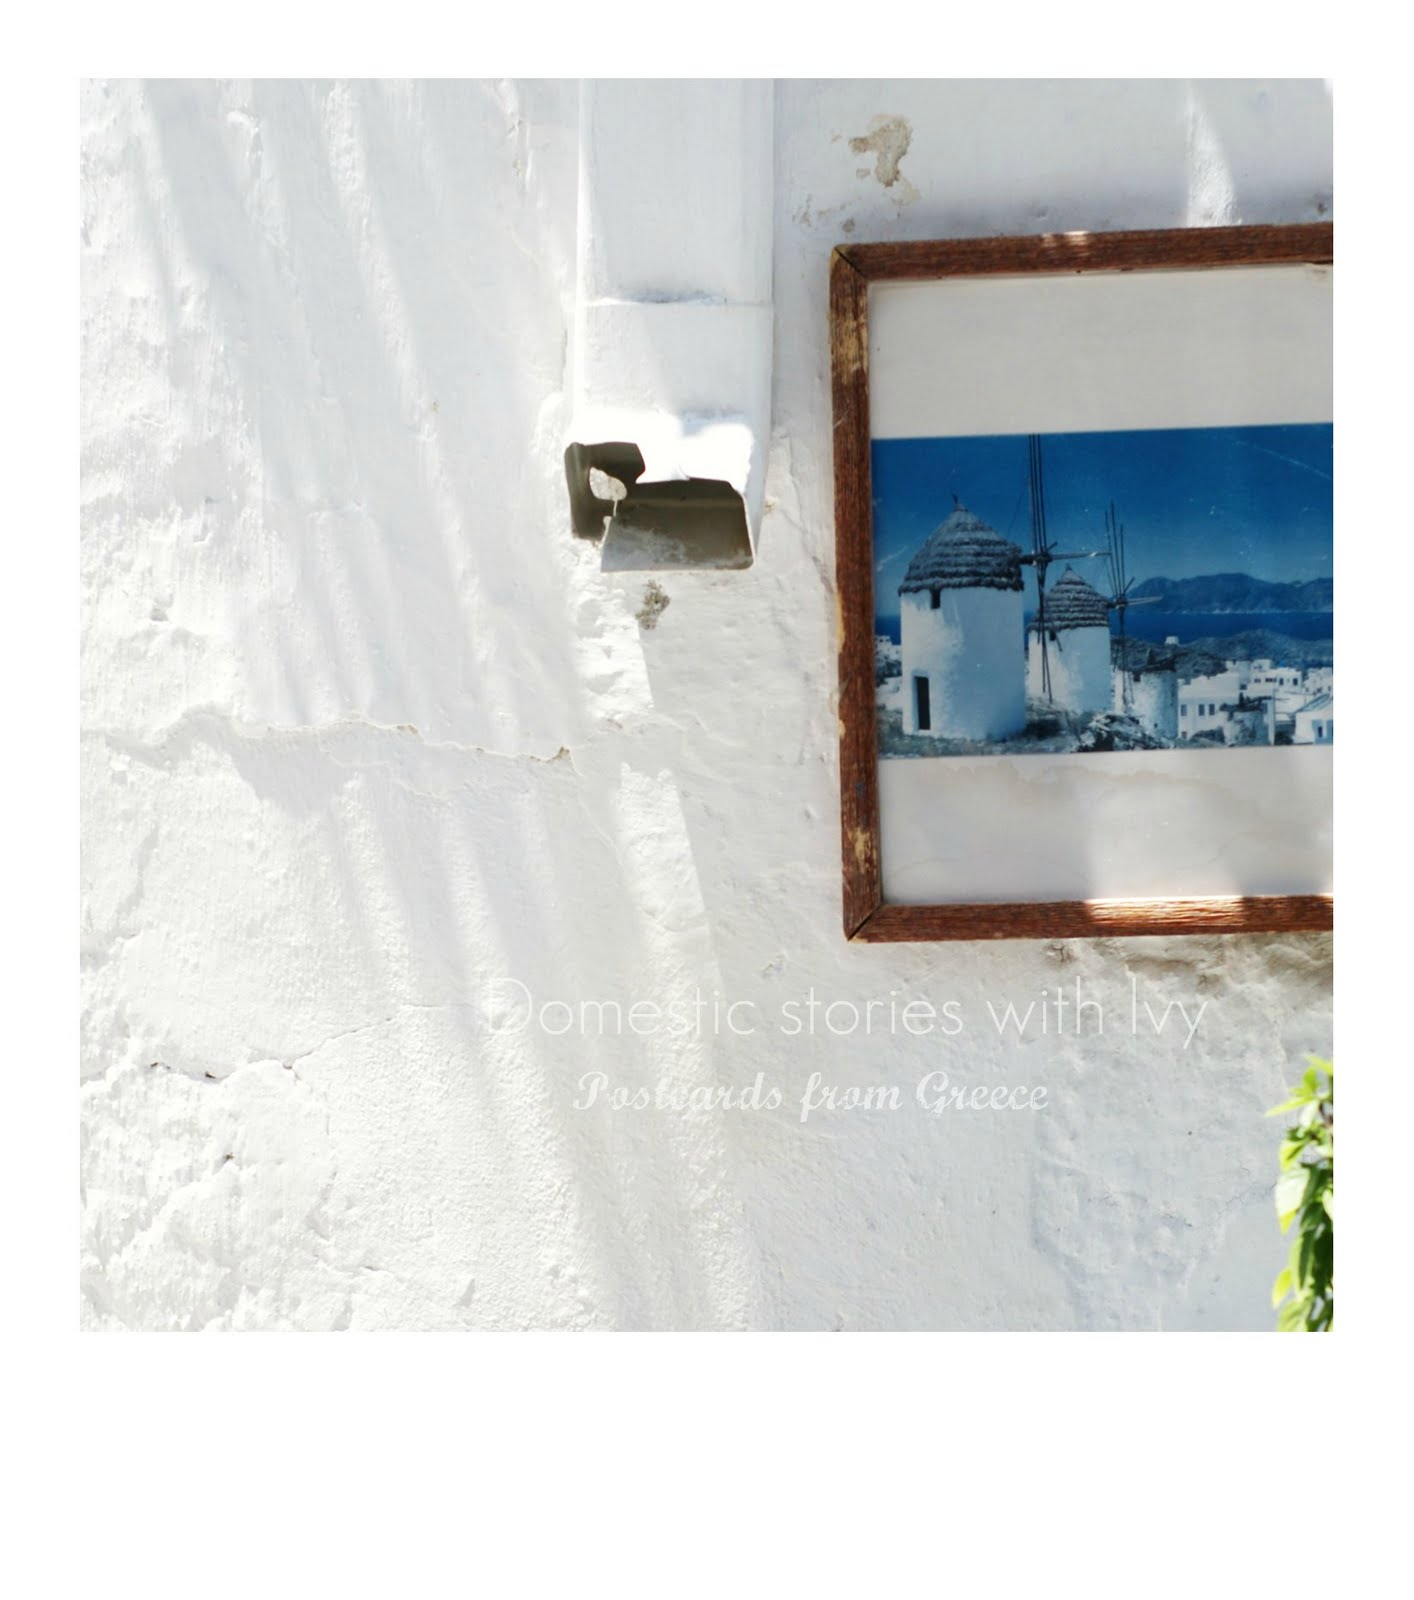 Postcards from Greece ~